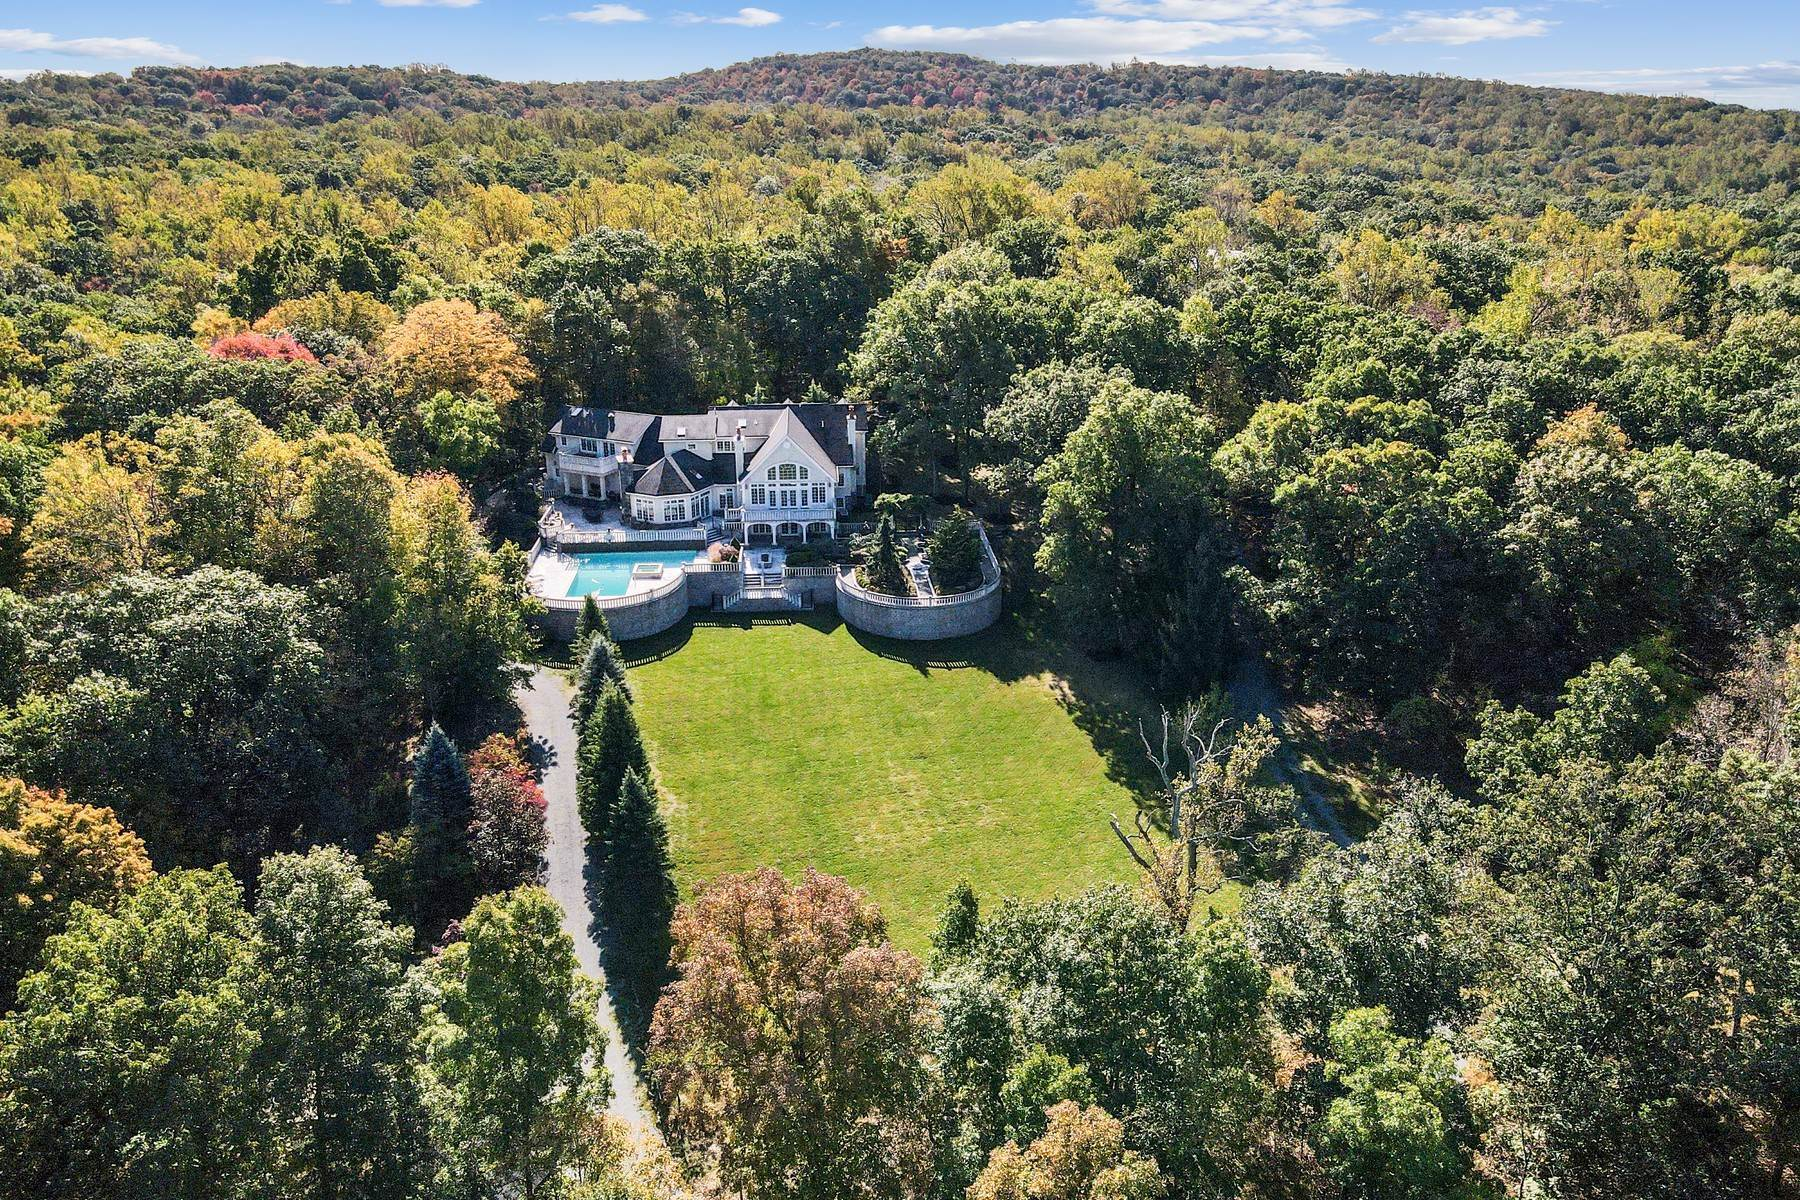 Single Family Homes for Sale at 100 Clausland Mountain Road Blauvelt, New York 10913 United States